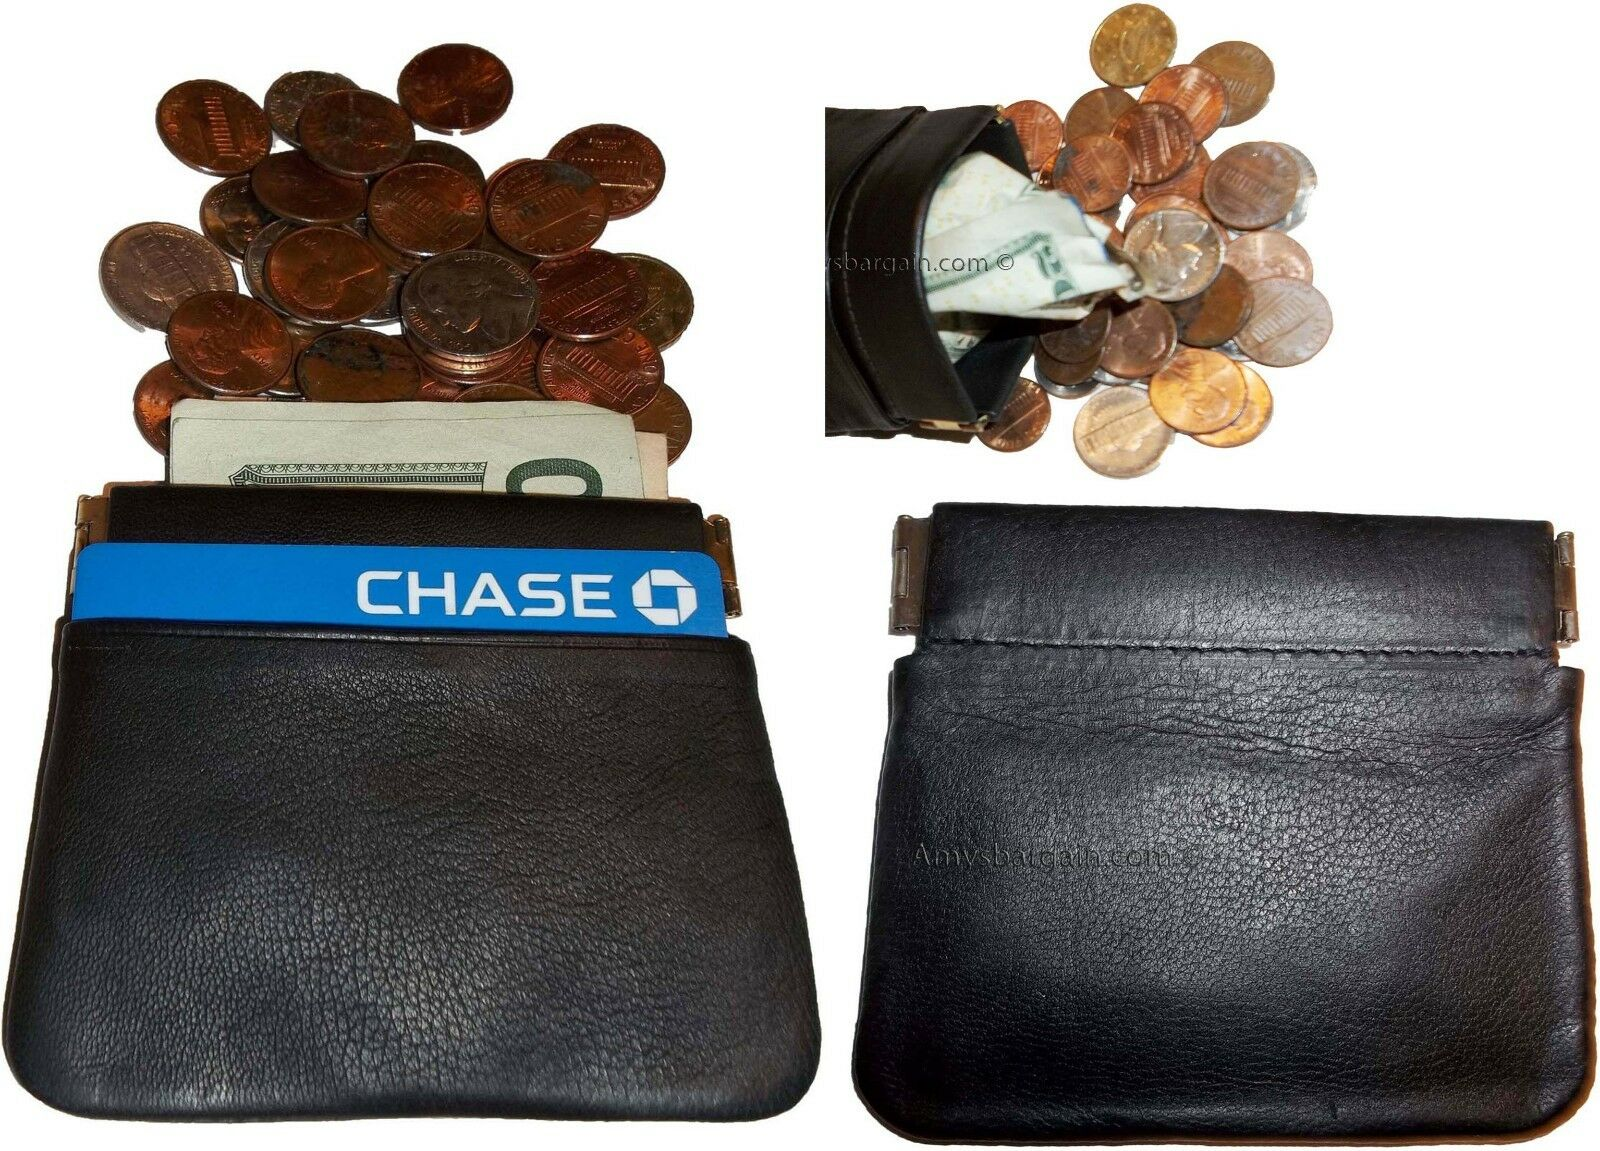 Lot of 2 New Leather Squeeze change purse metal framed squeeze Coin Change Case